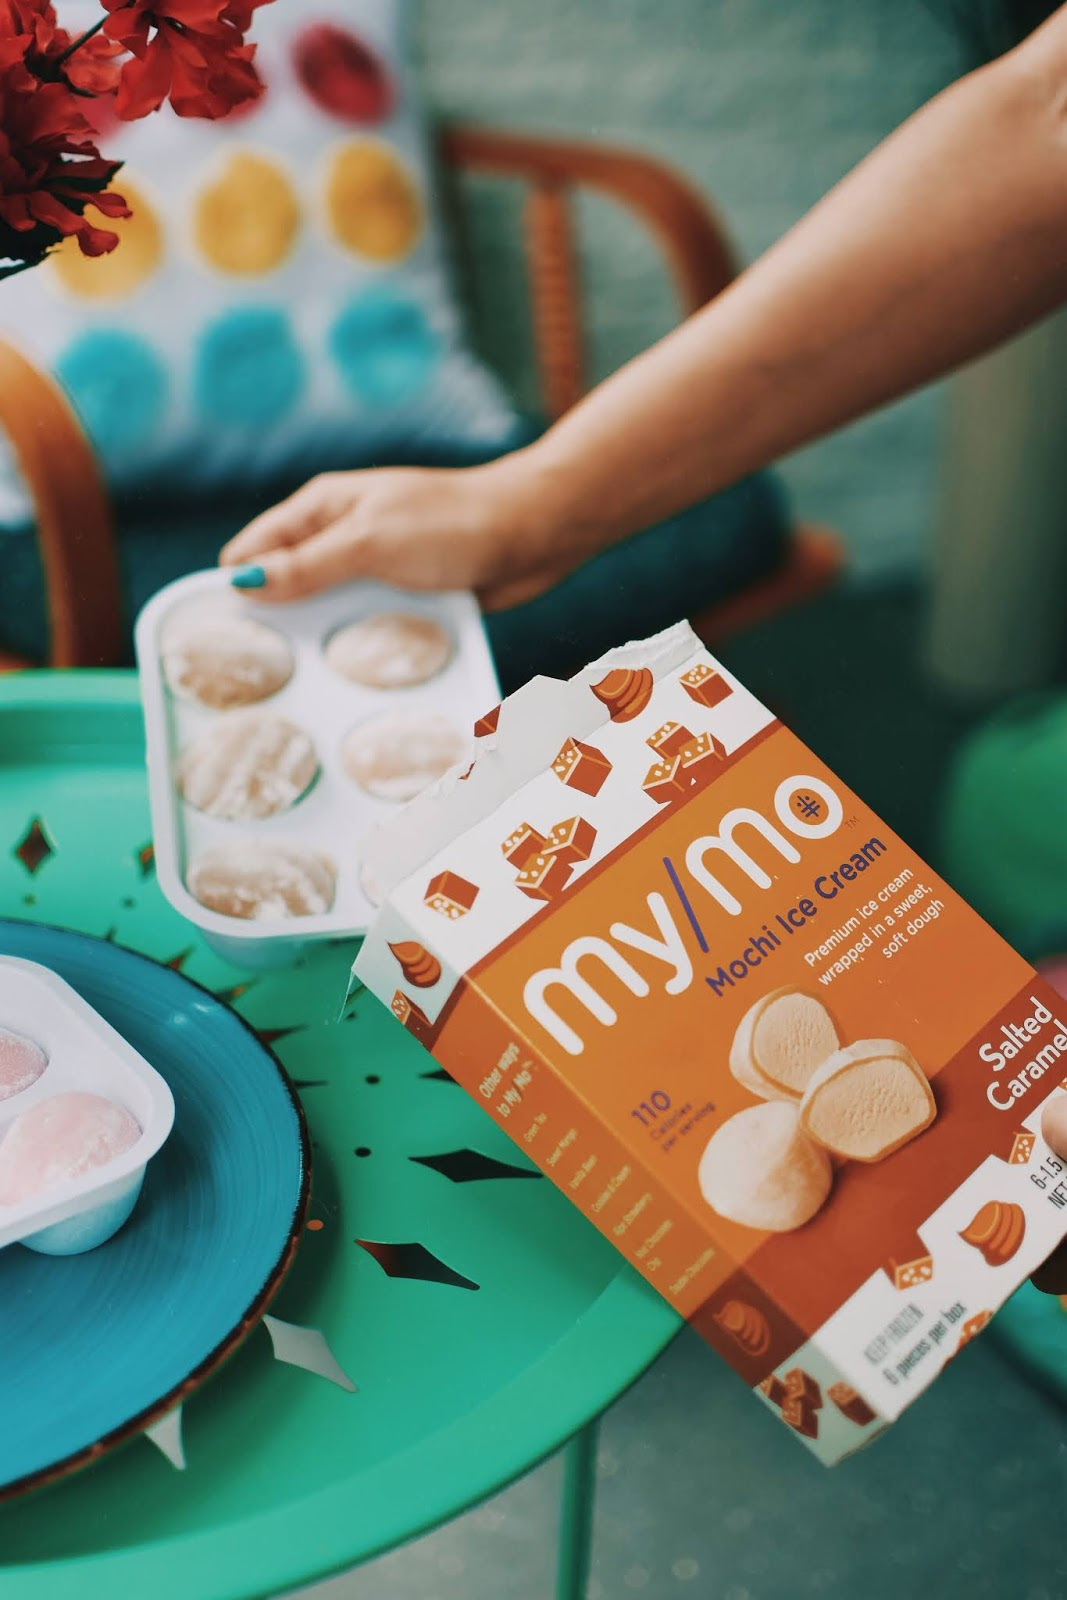 Summertime Snacking with My/Mo Mochi Ice Cream -Mari Estilo-verano 2018-los chuchis-dcblogger-bloggerstyle-couple influencers-bloggers-summer